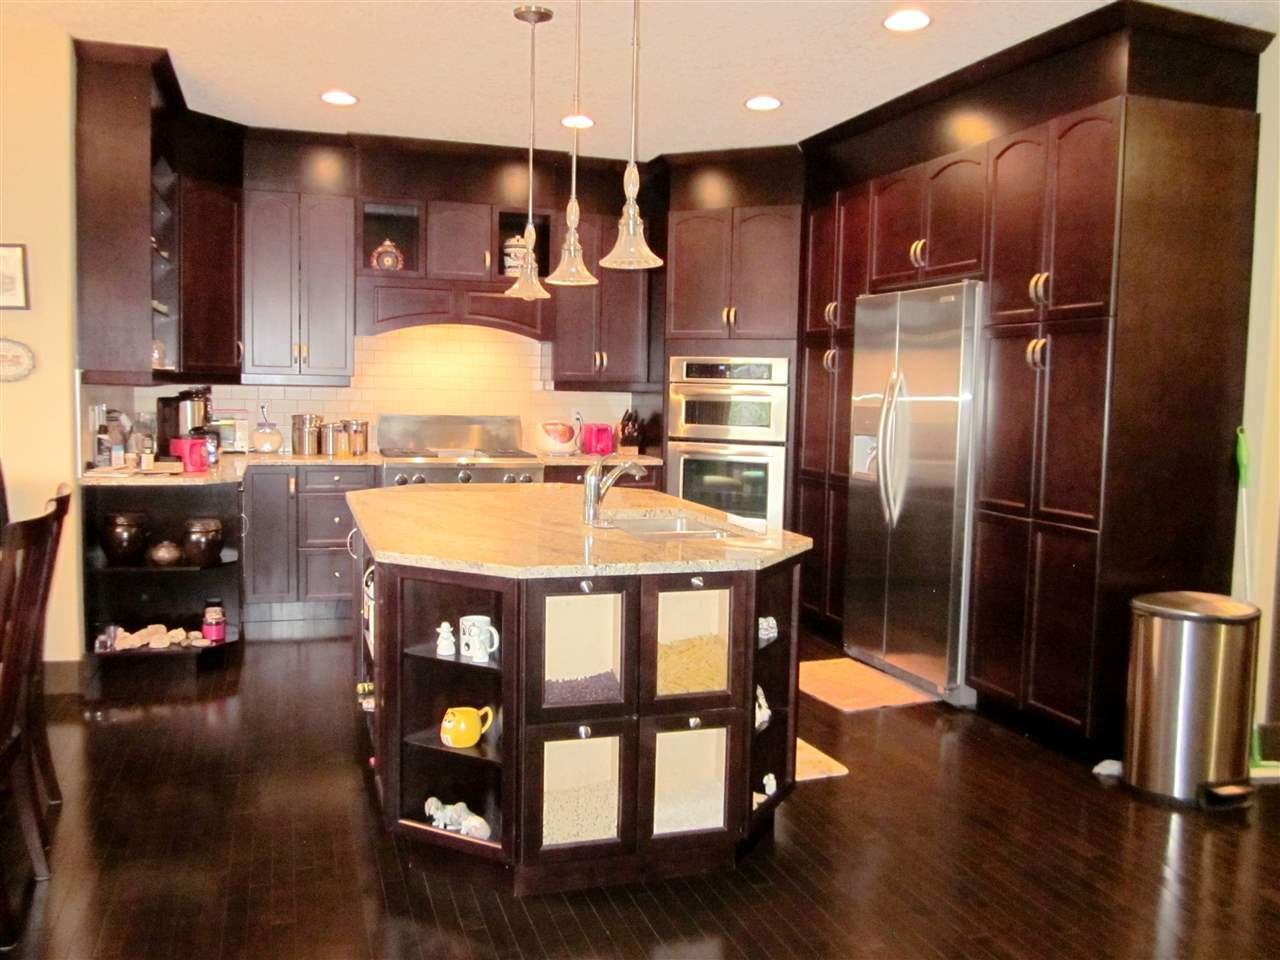 Gorgeous kitchen with octagon shape island, granite countertops, ample dark cabinets, high end stainless steel appliances with gas stove, built-in ovens, and tile backsplash.